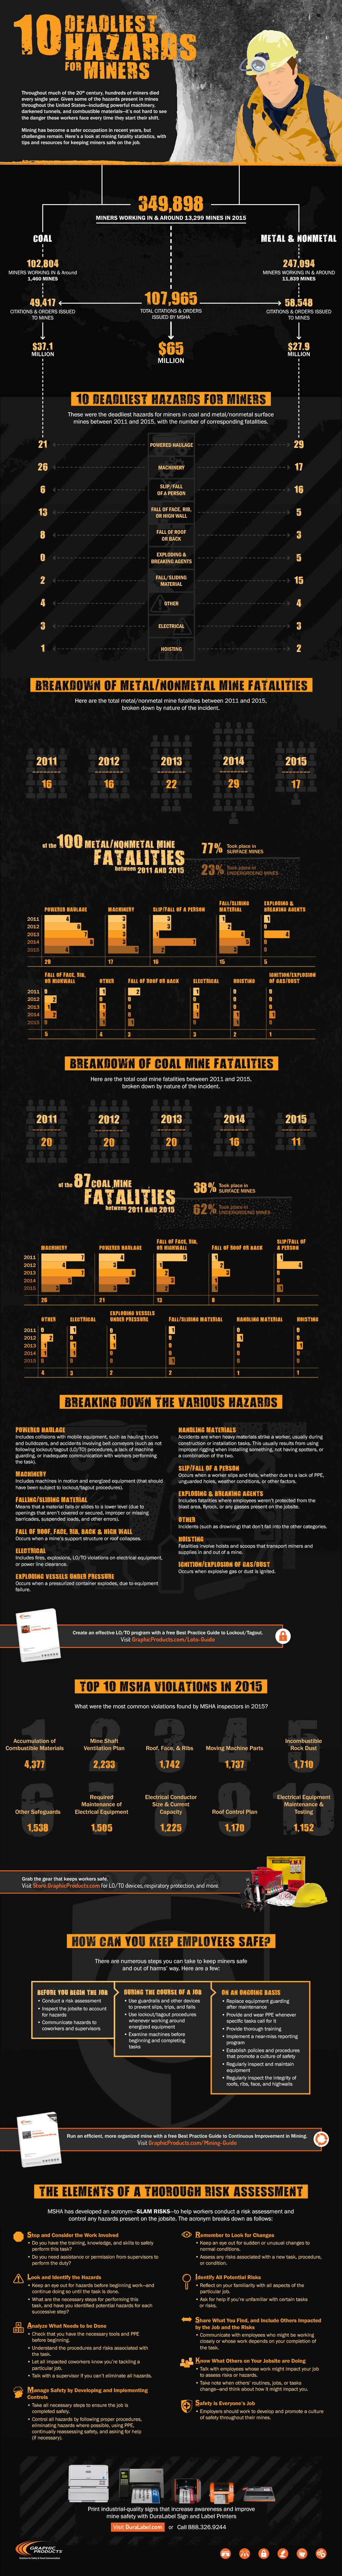 10-deadliest-hazards-for-miners-infographic